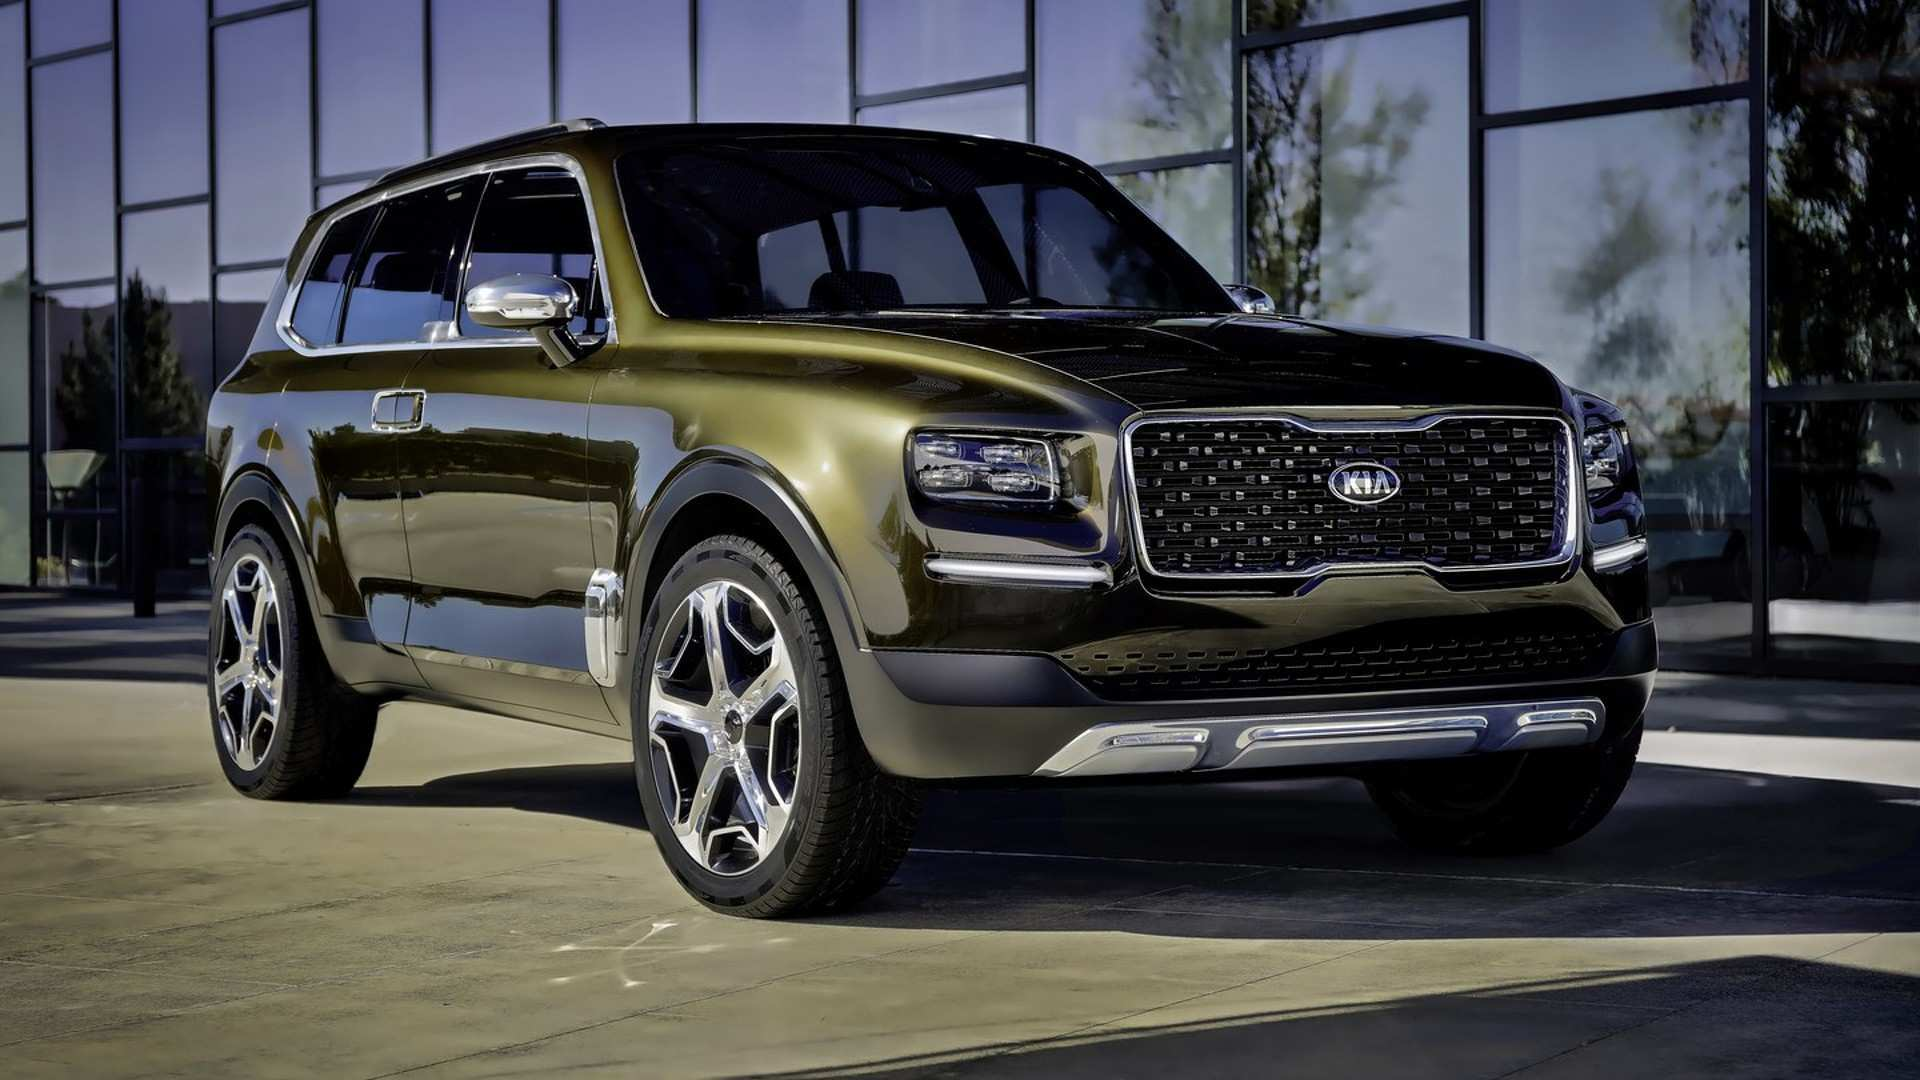 35 All New Kia New Suv 2020 New Concept